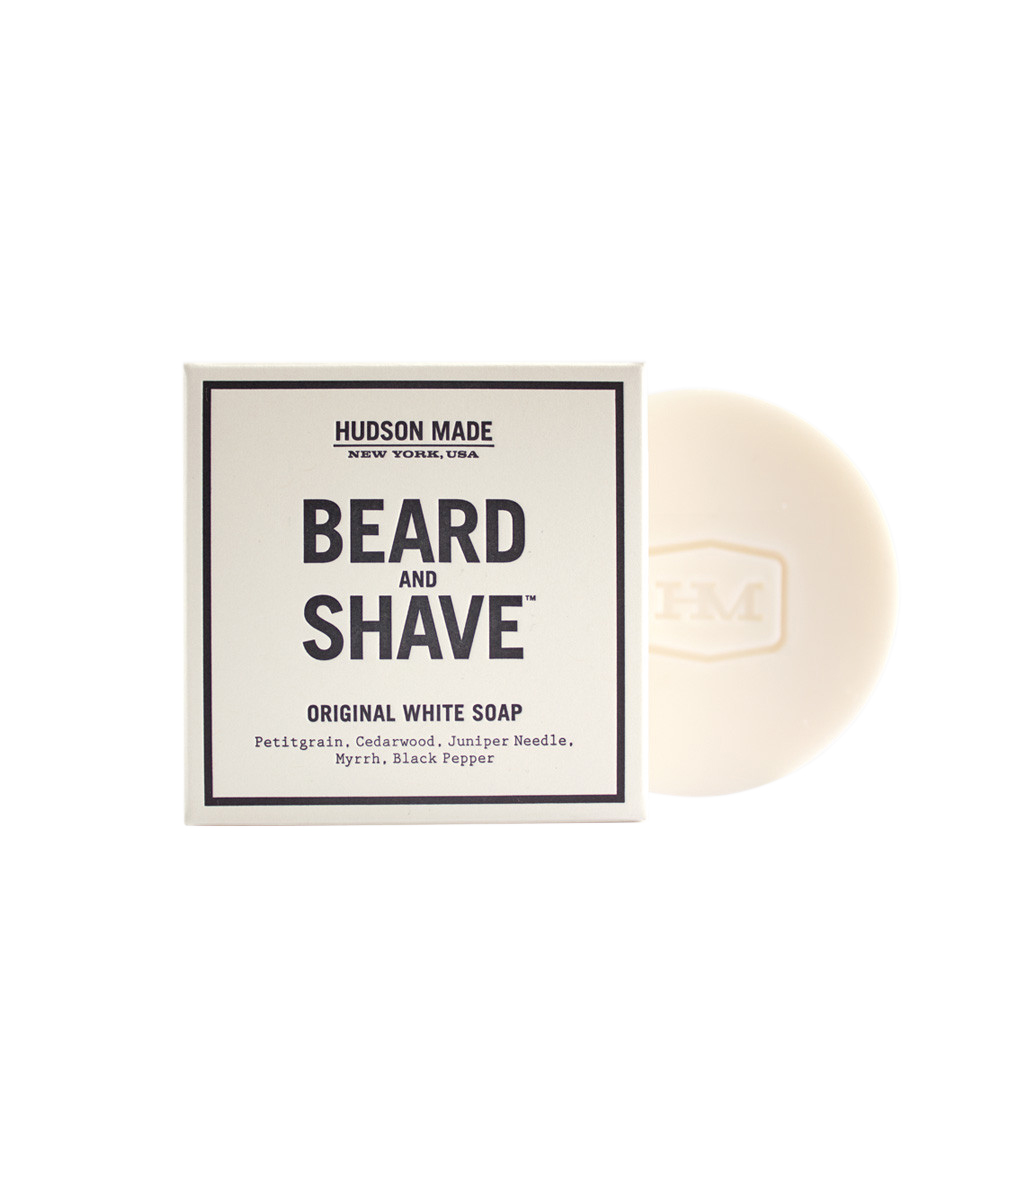 Hudson Made Beard and Shave Soap in Original White